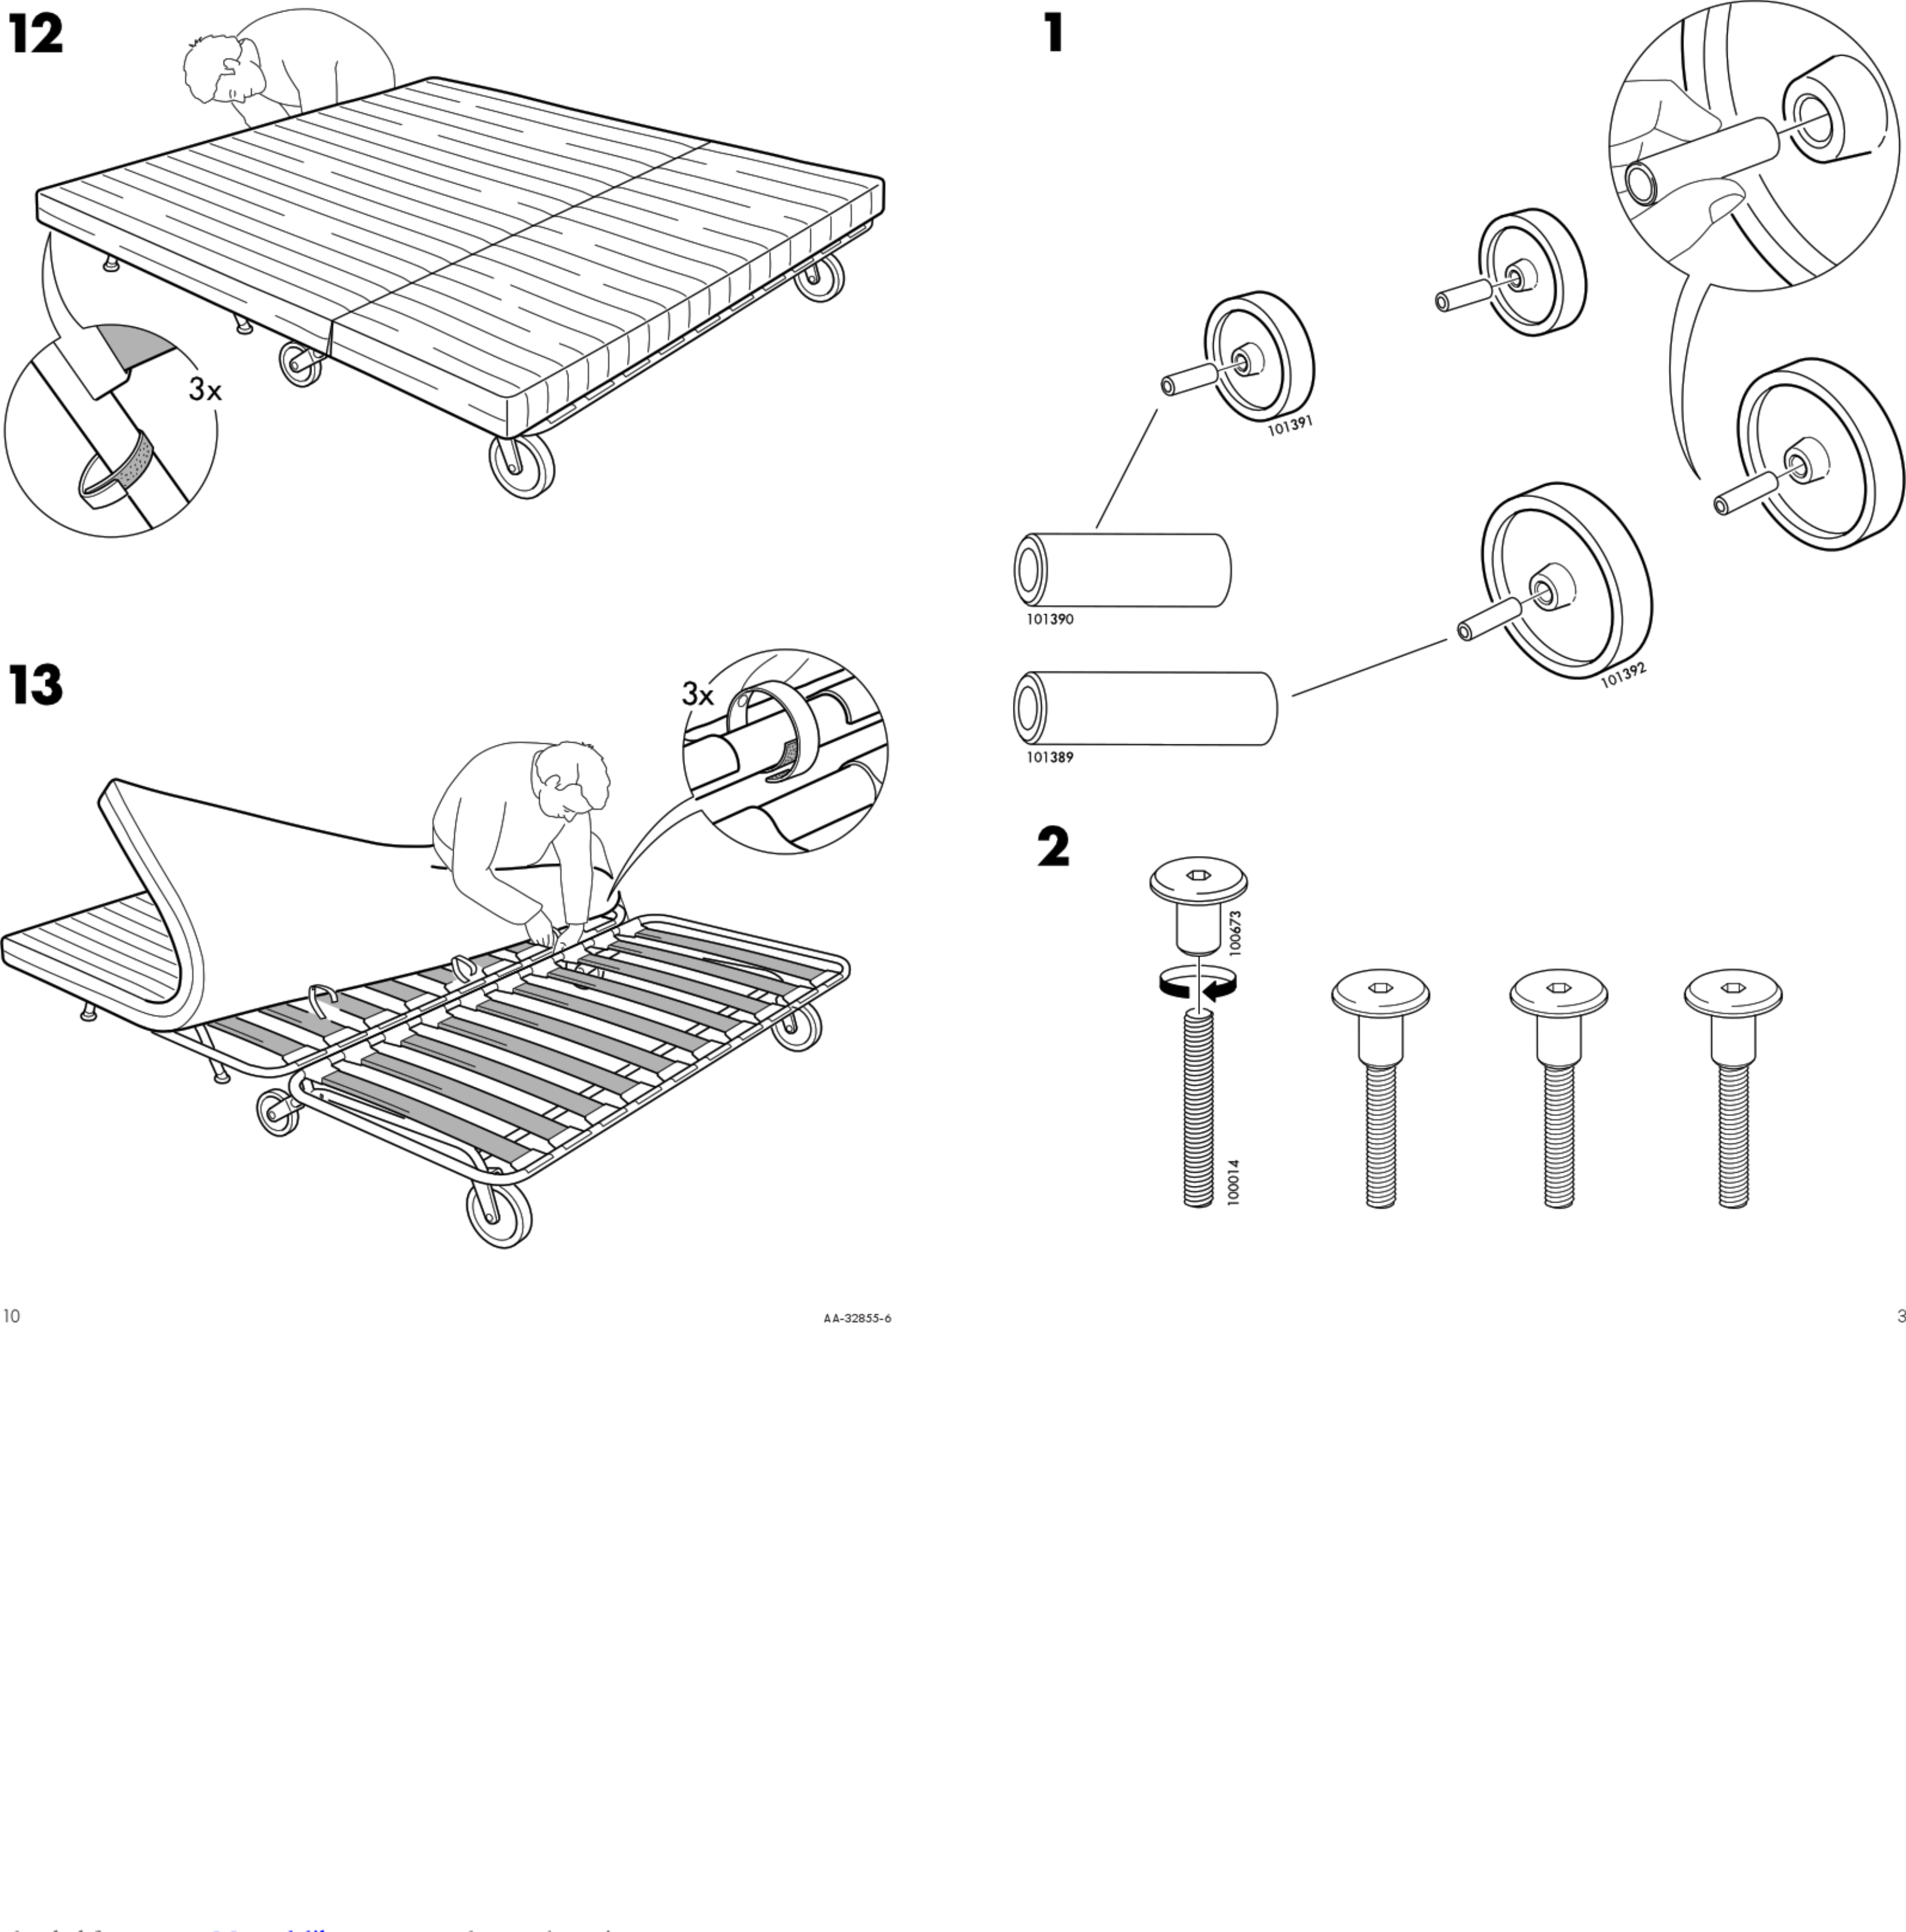 Ikea Ps Sofa Bed Frame Instructions Manual 1002790 User